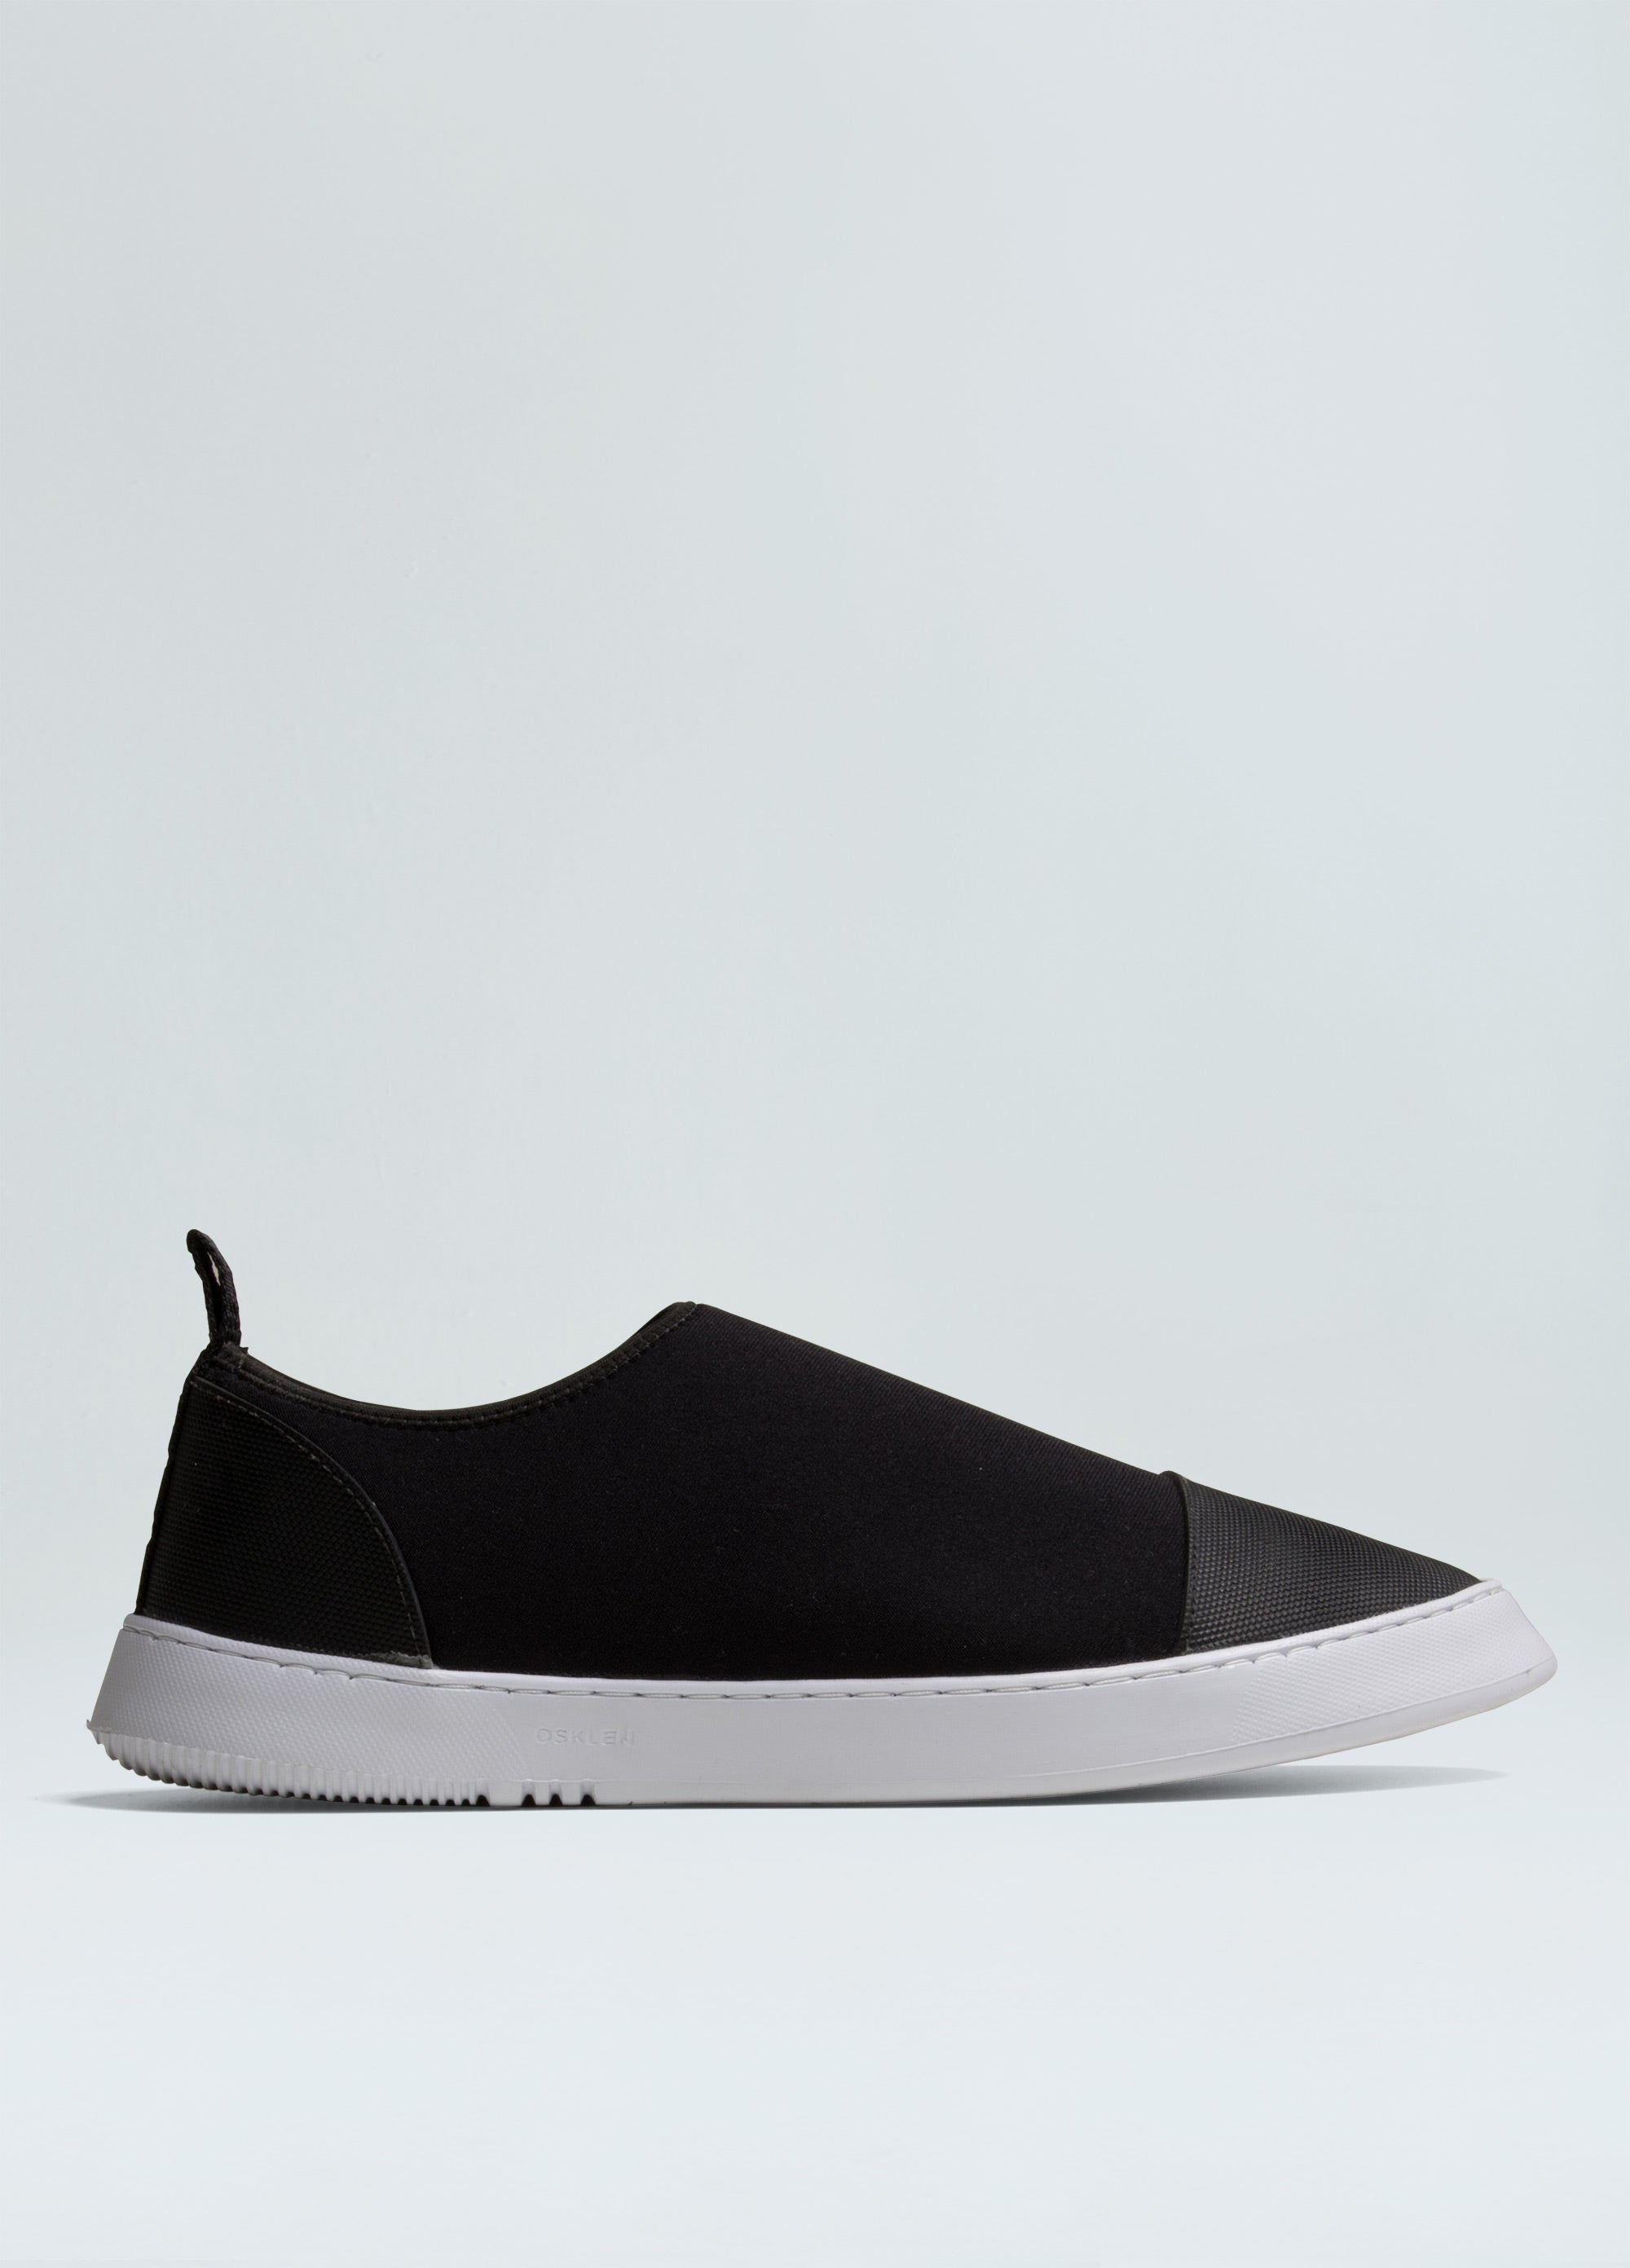 Soho Super Light Toe Cap Sneakers